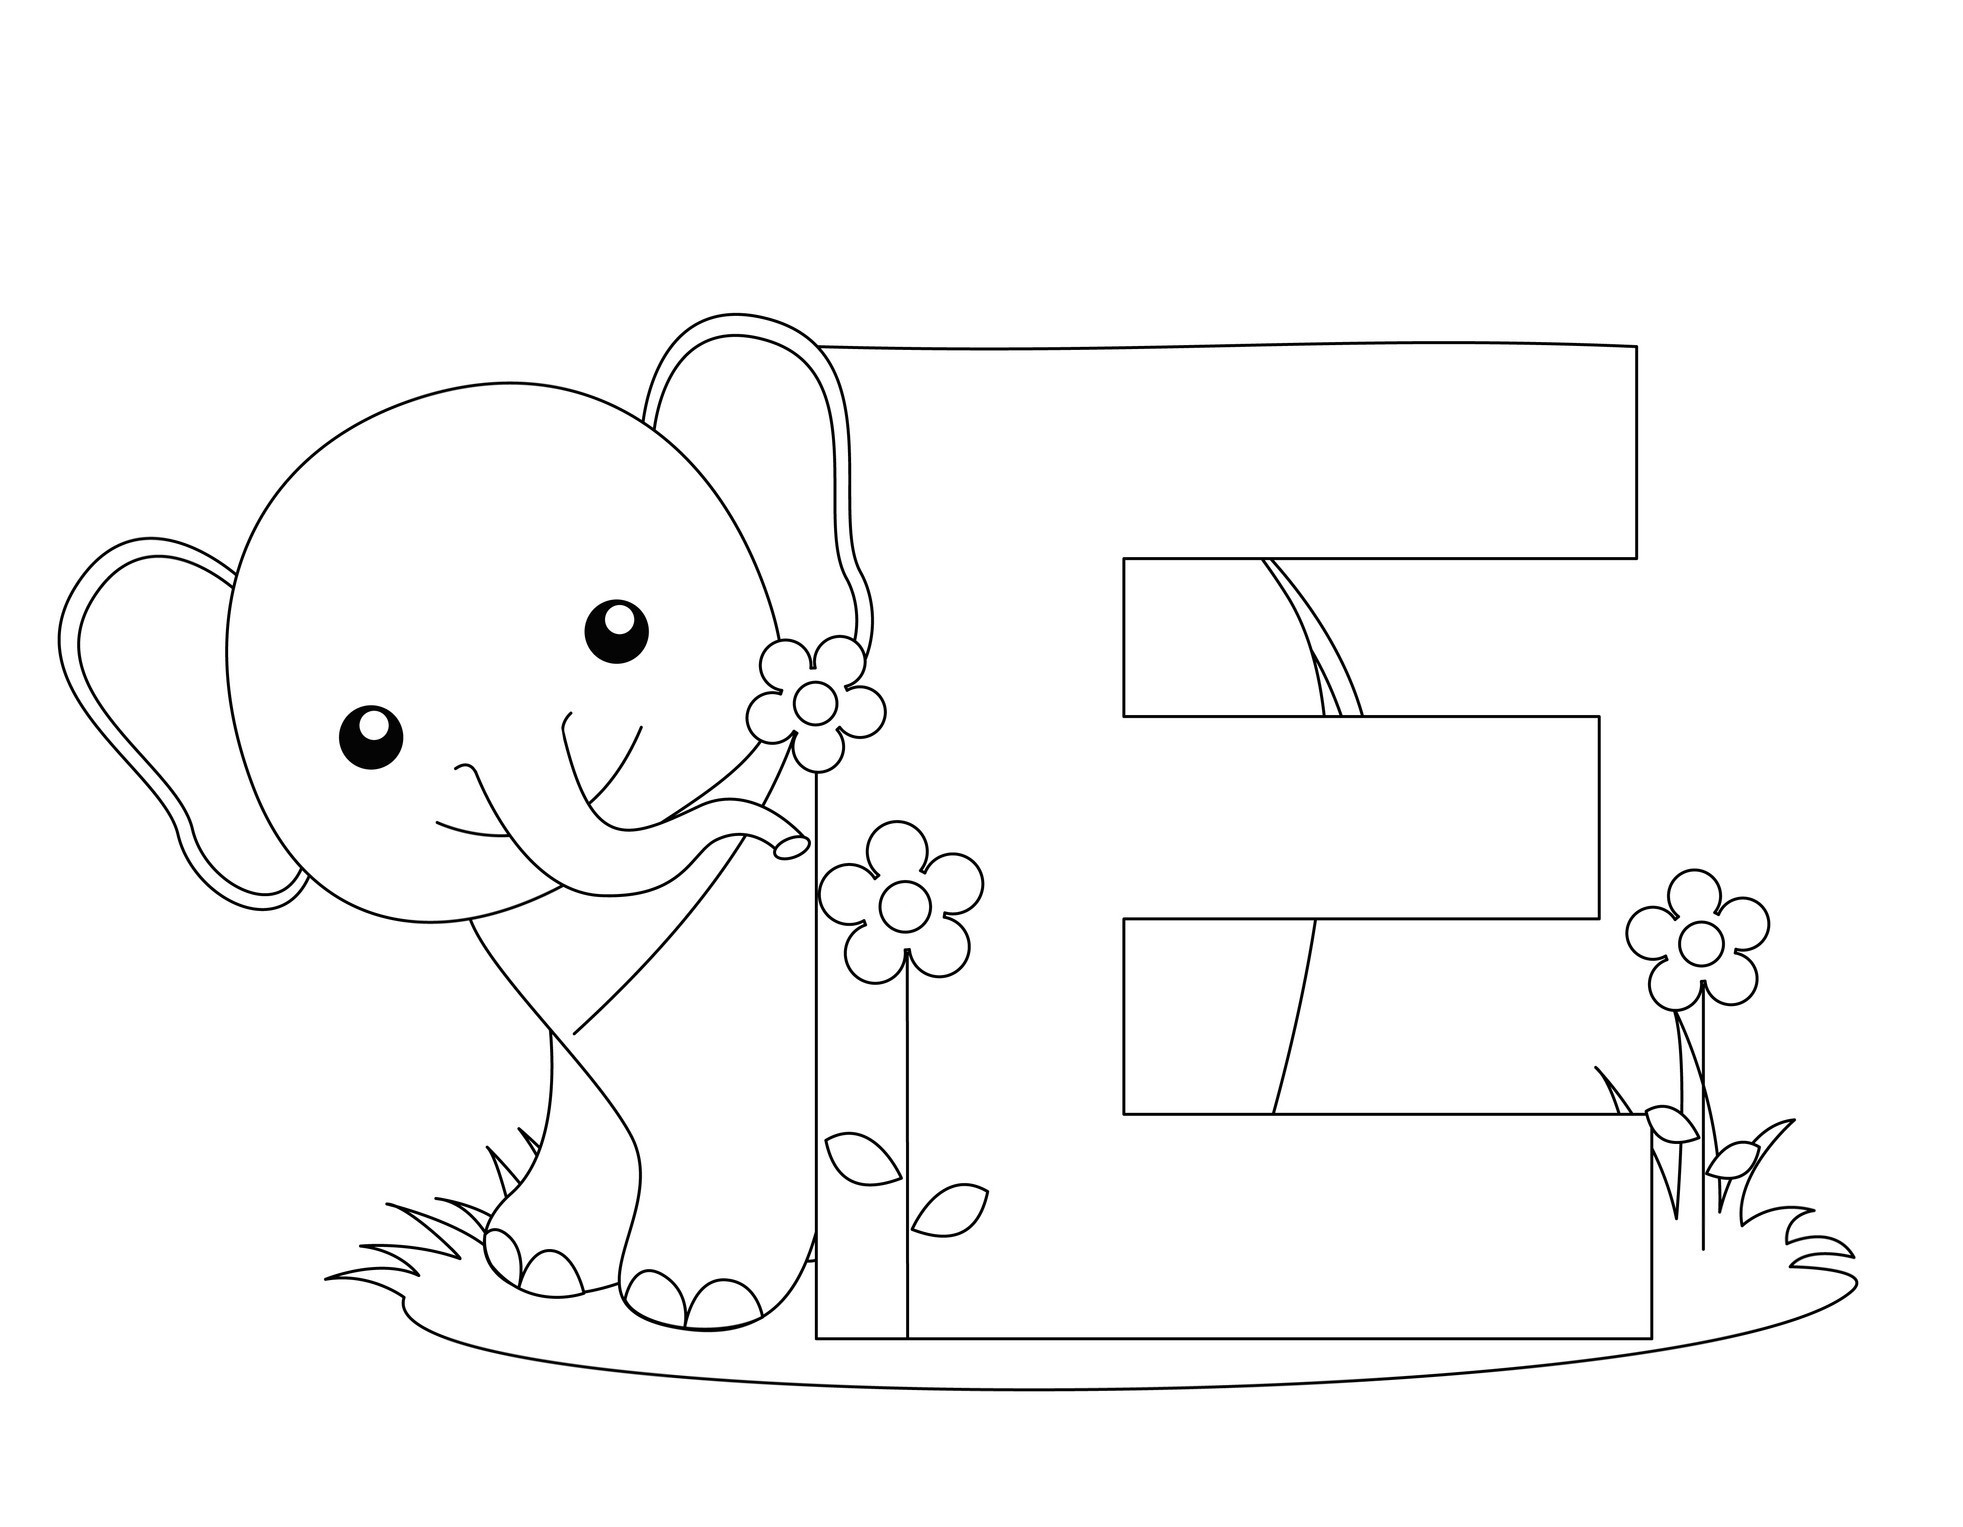 Free Printable Alphabet Coloring Pages For Kids 13 #12602 - Free Printable Preschool Alphabet Coloring Pages